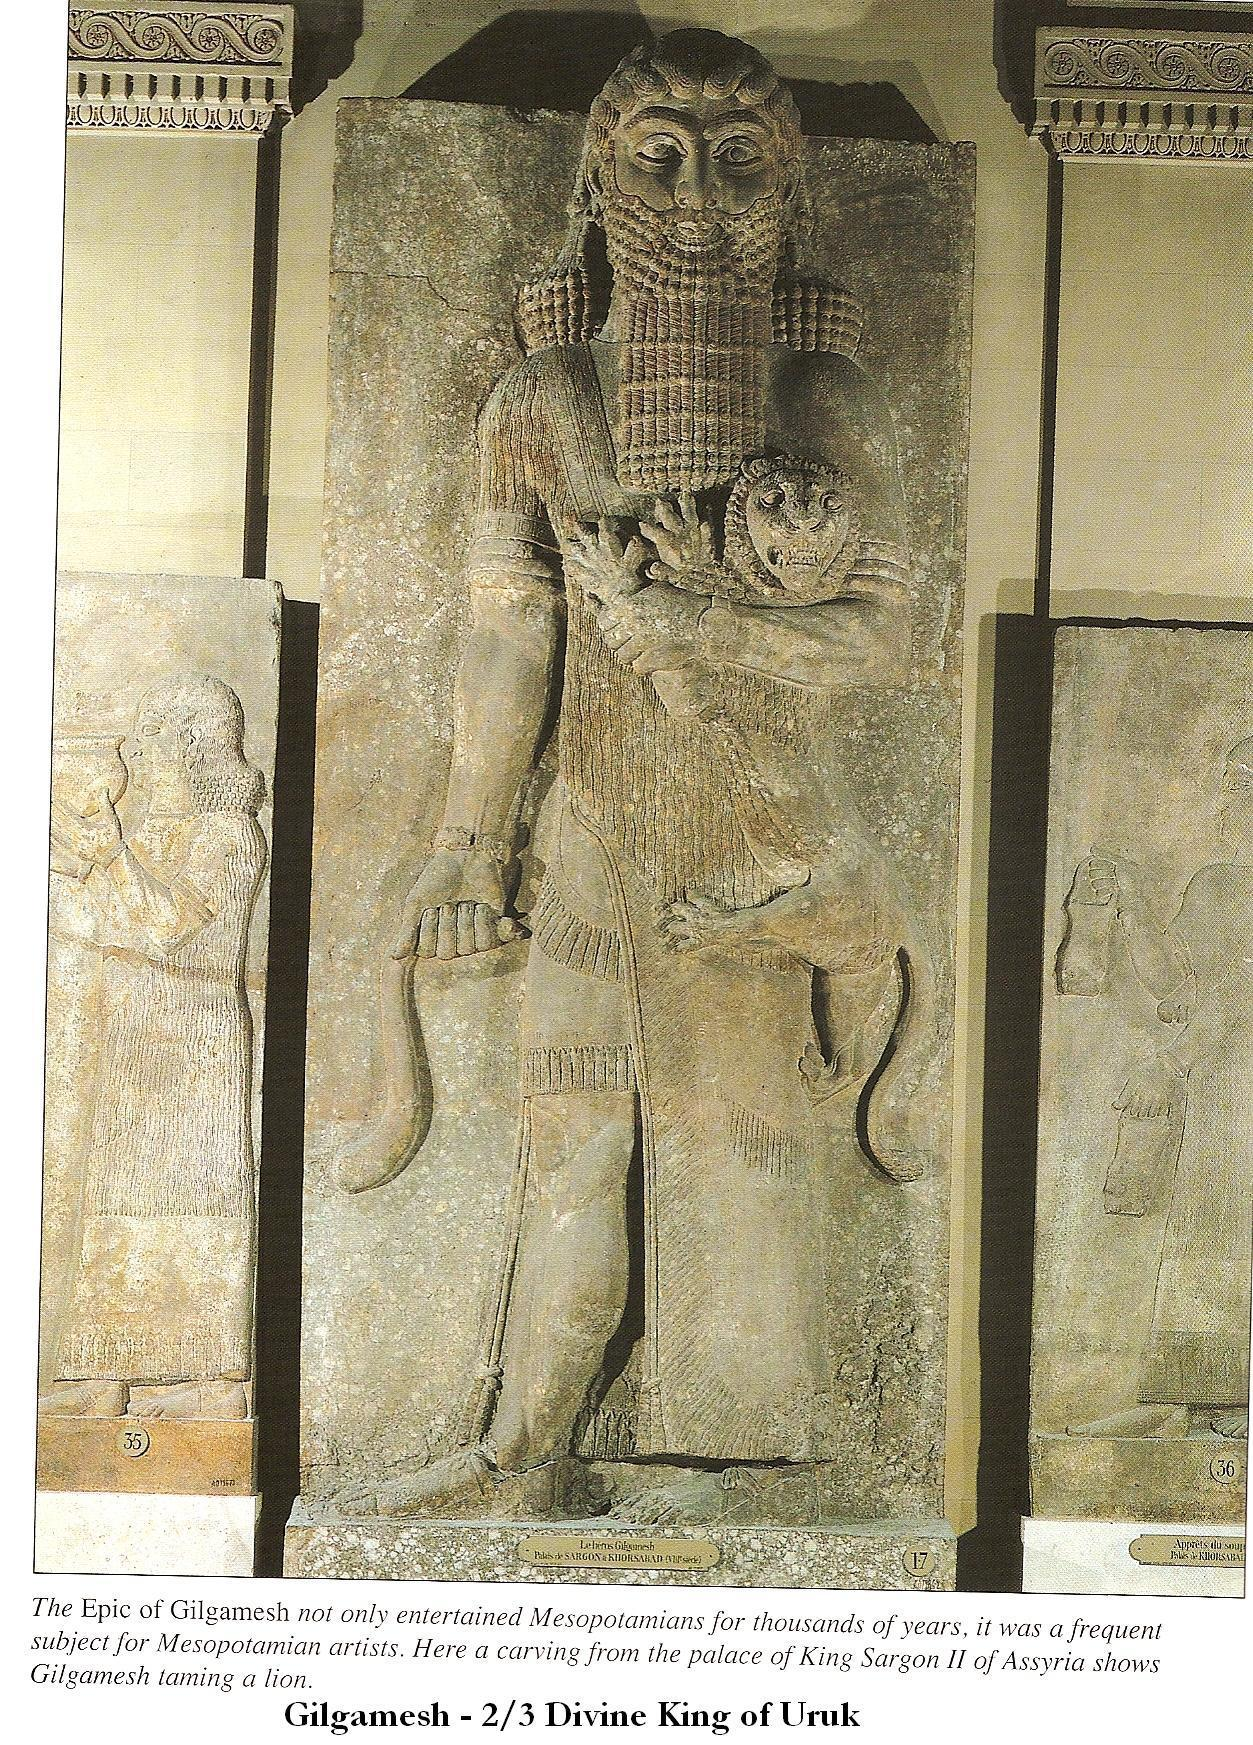 1a - Gilgamesh two-thirds divine, 2,700 B.C., king of Uruk for 325 years, the mixed-breed offspring of the gods were bigger, stronger, faster, smarter, & lived much longer than the earthlings